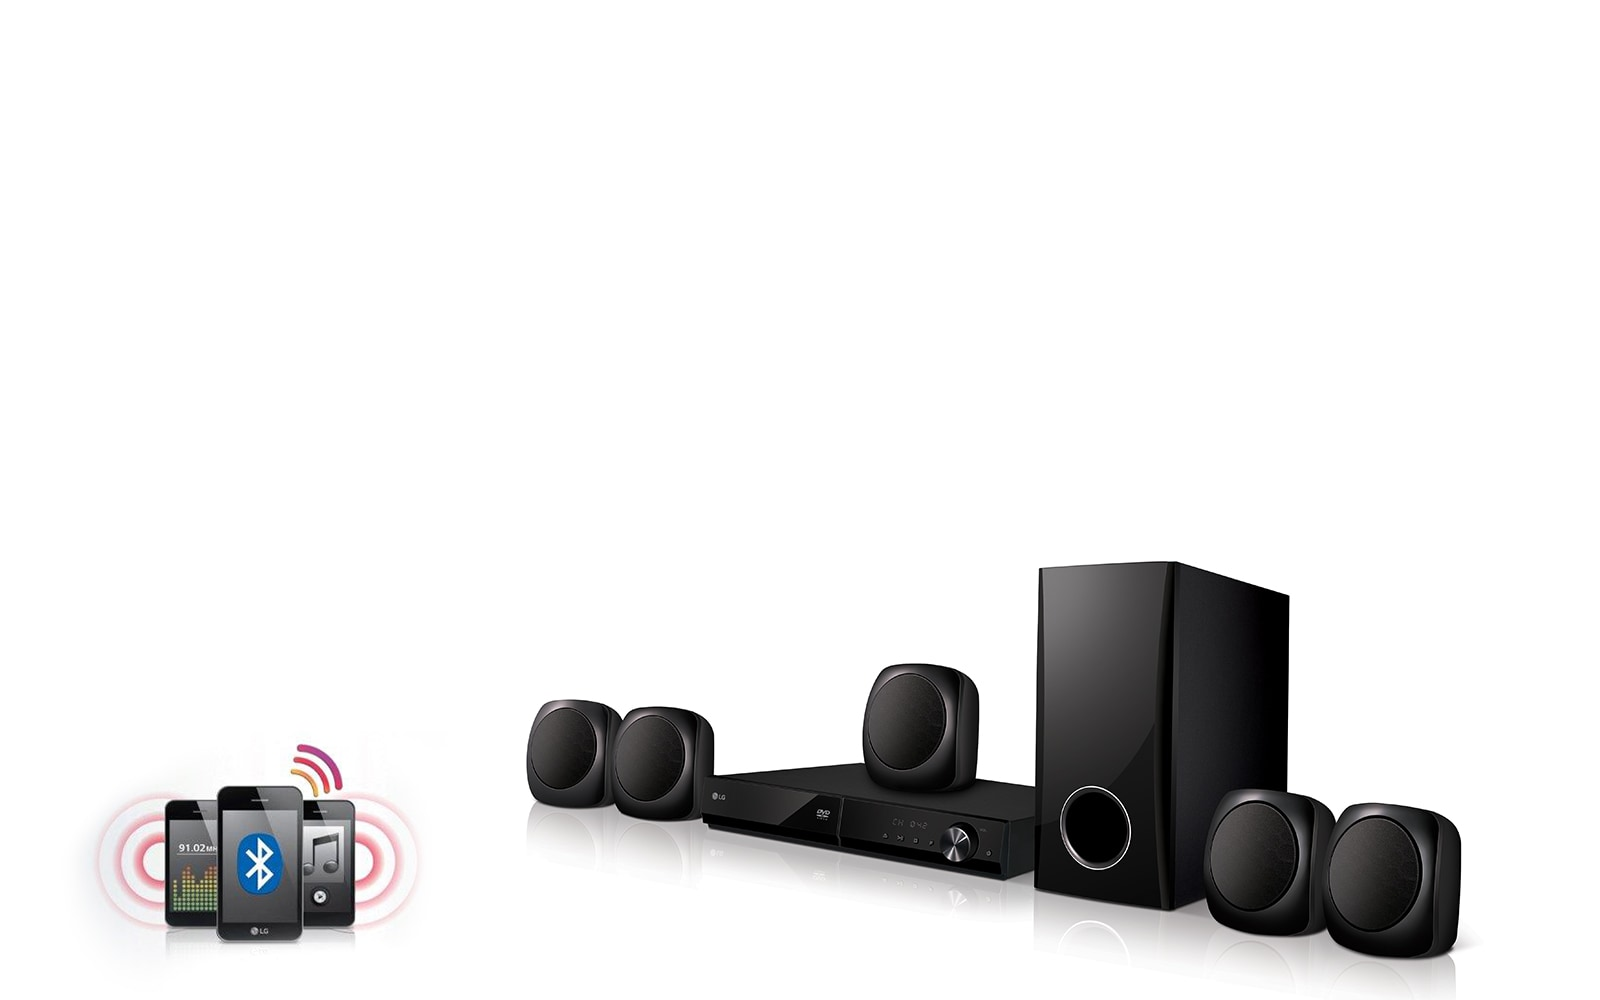 Wireless Bluetooth Audio Streaming Stream wirelessly your favorite music on mobile or other devices that are compatible with LG Home Theater.